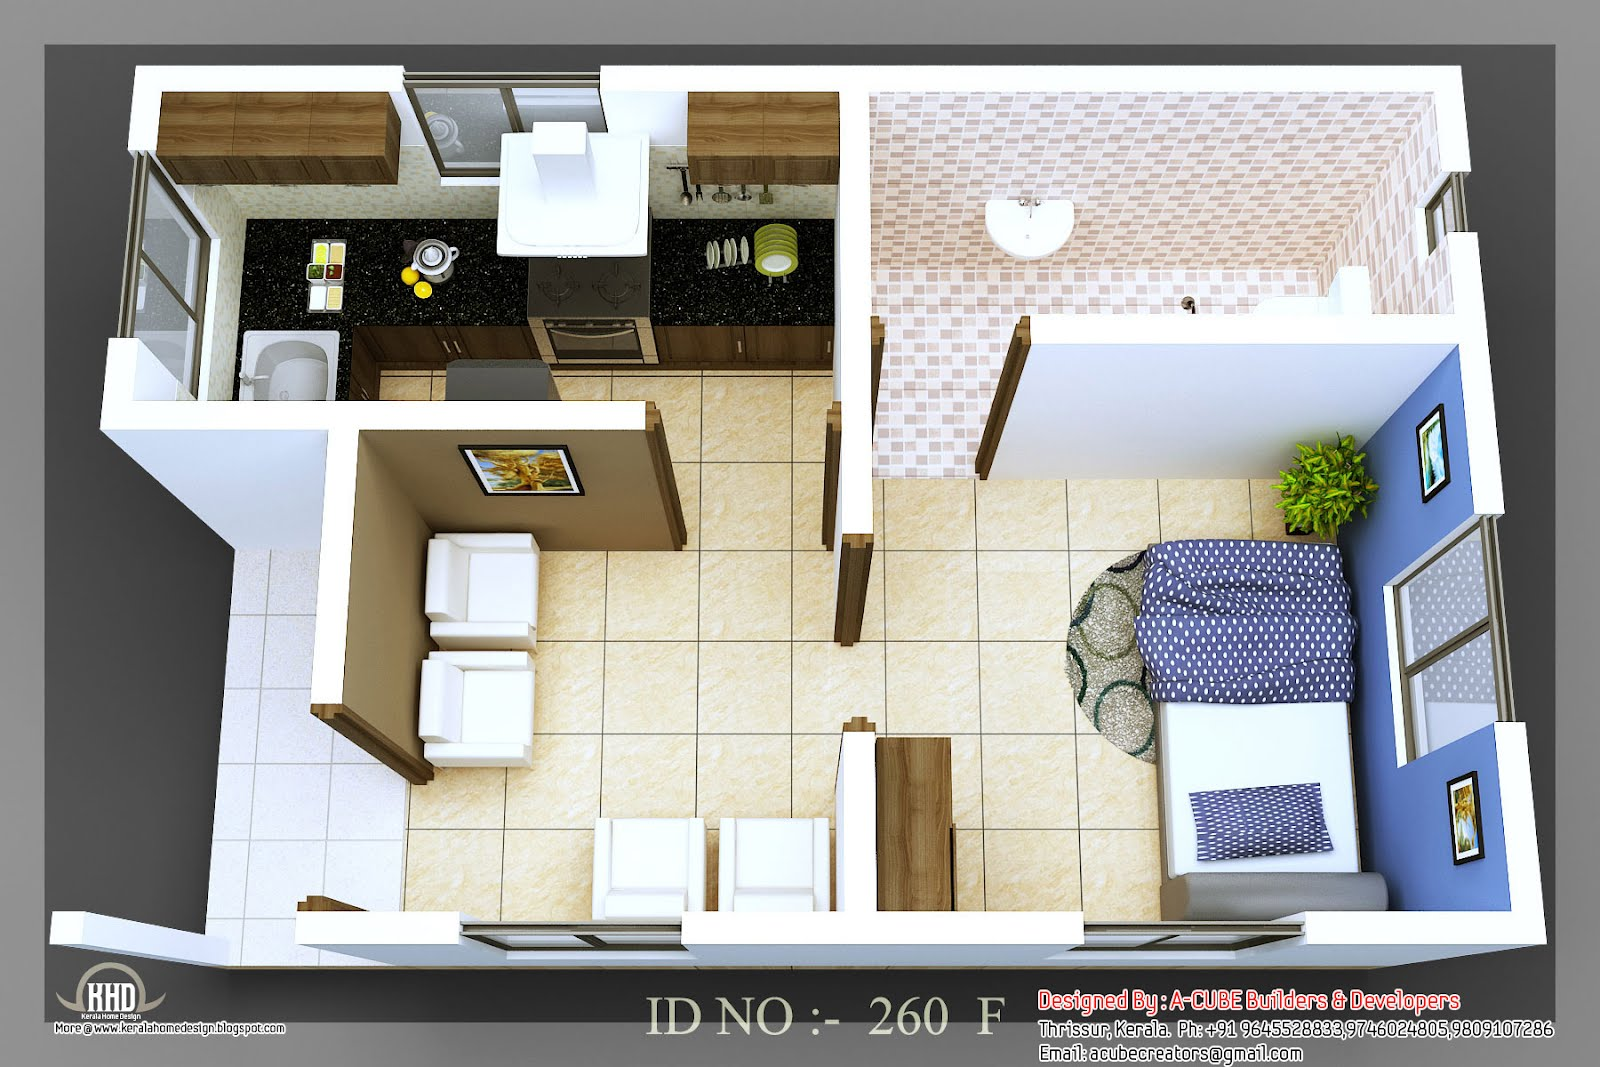 3d isometric views of small house plans home appliance for Small house design plans